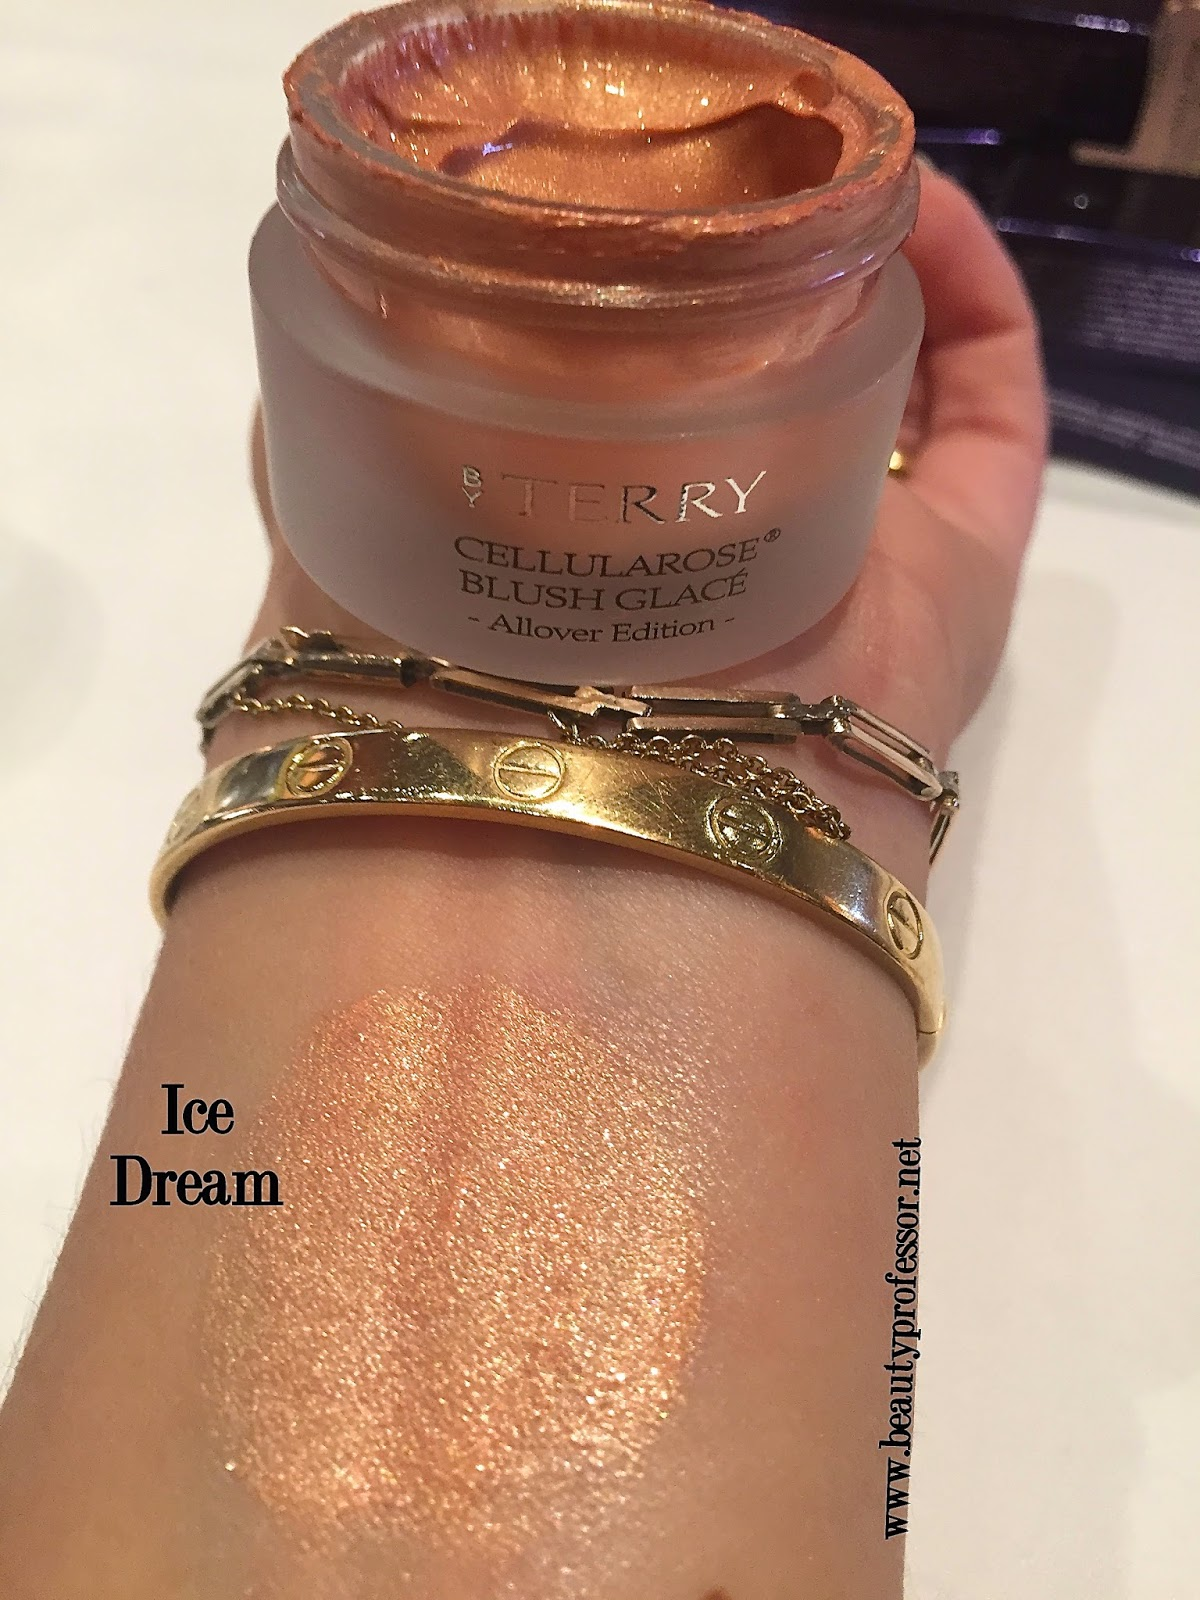 by terry cellularose blush glace all over edition swatches ice dream